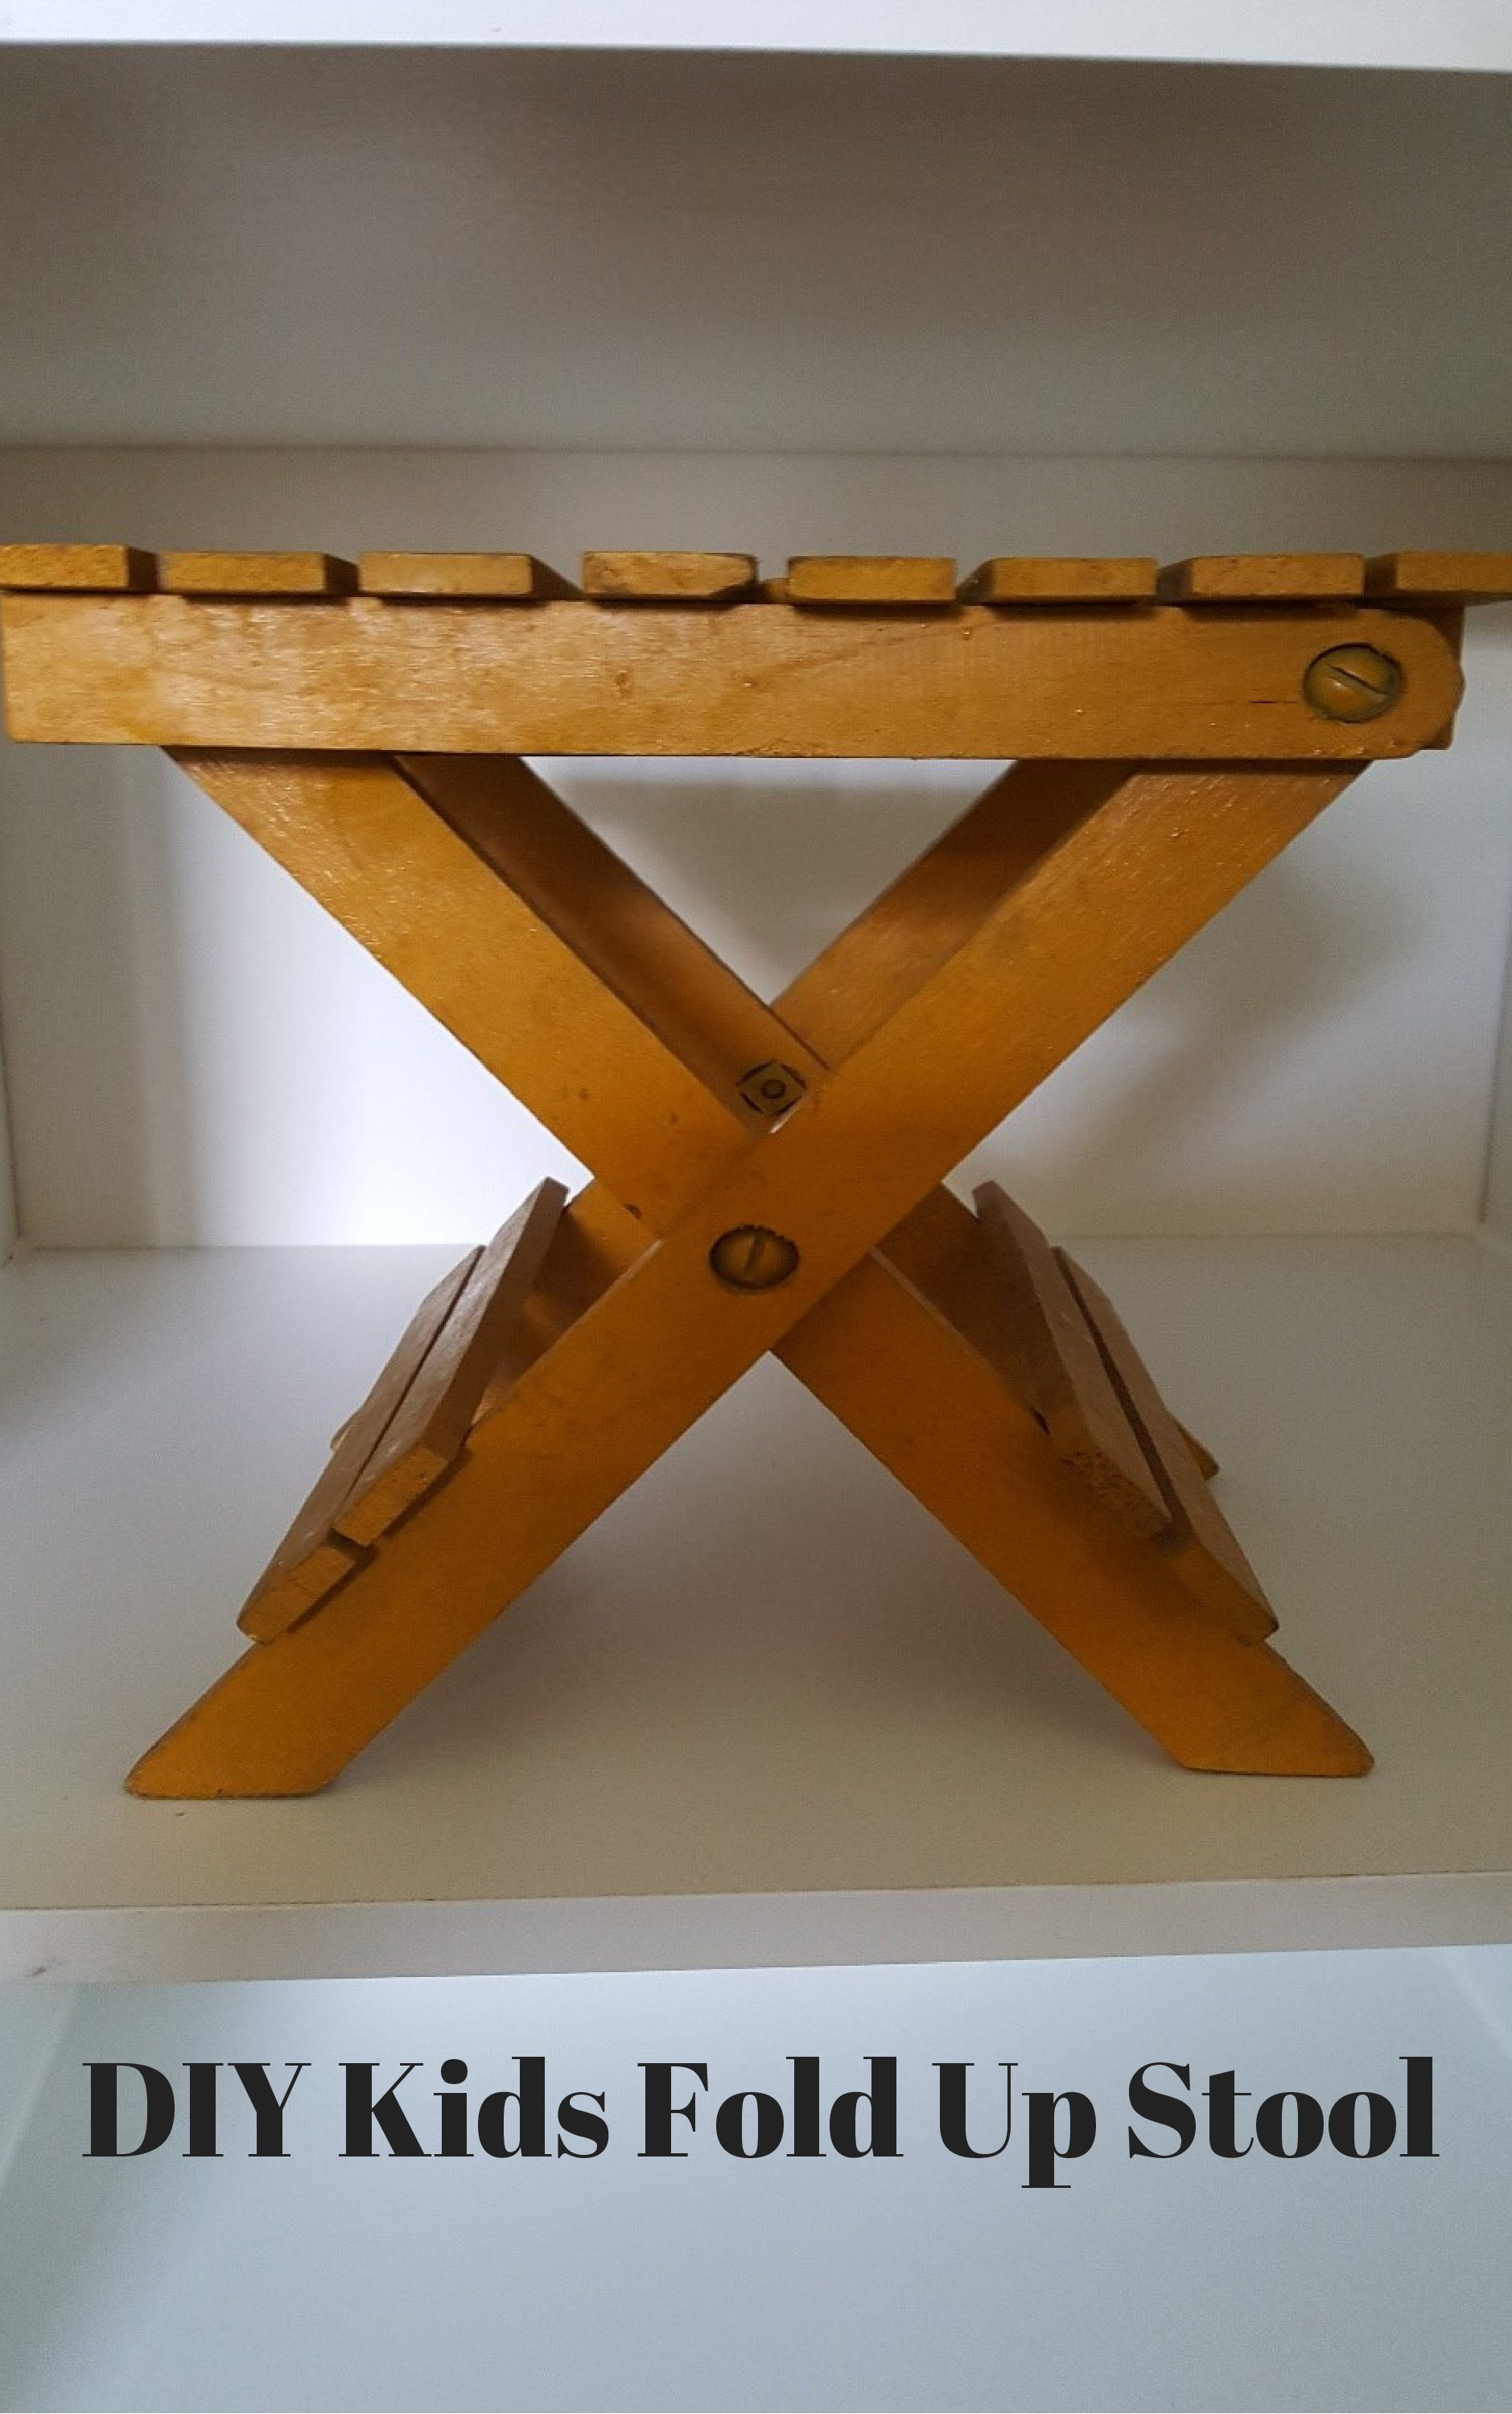 For home diy renovation projects for Diy kids stool